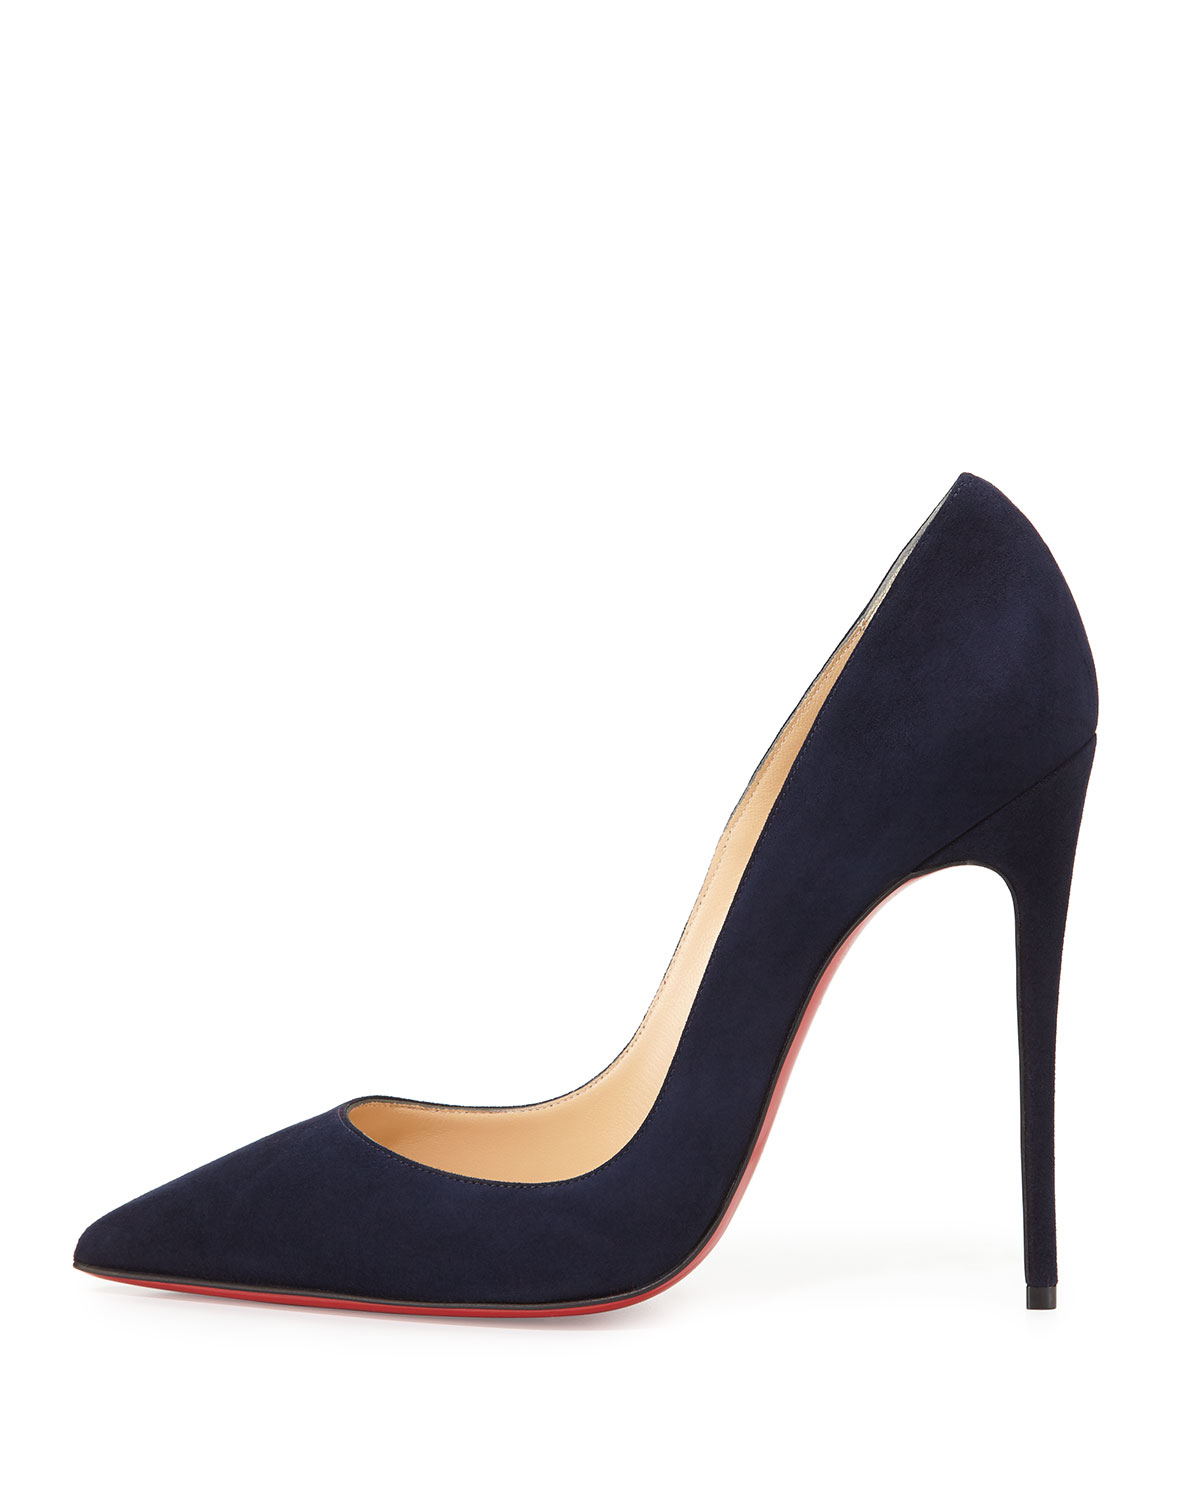 10625441251b Lyst - Christian Louboutin So Kate Suede Pumps in Blue